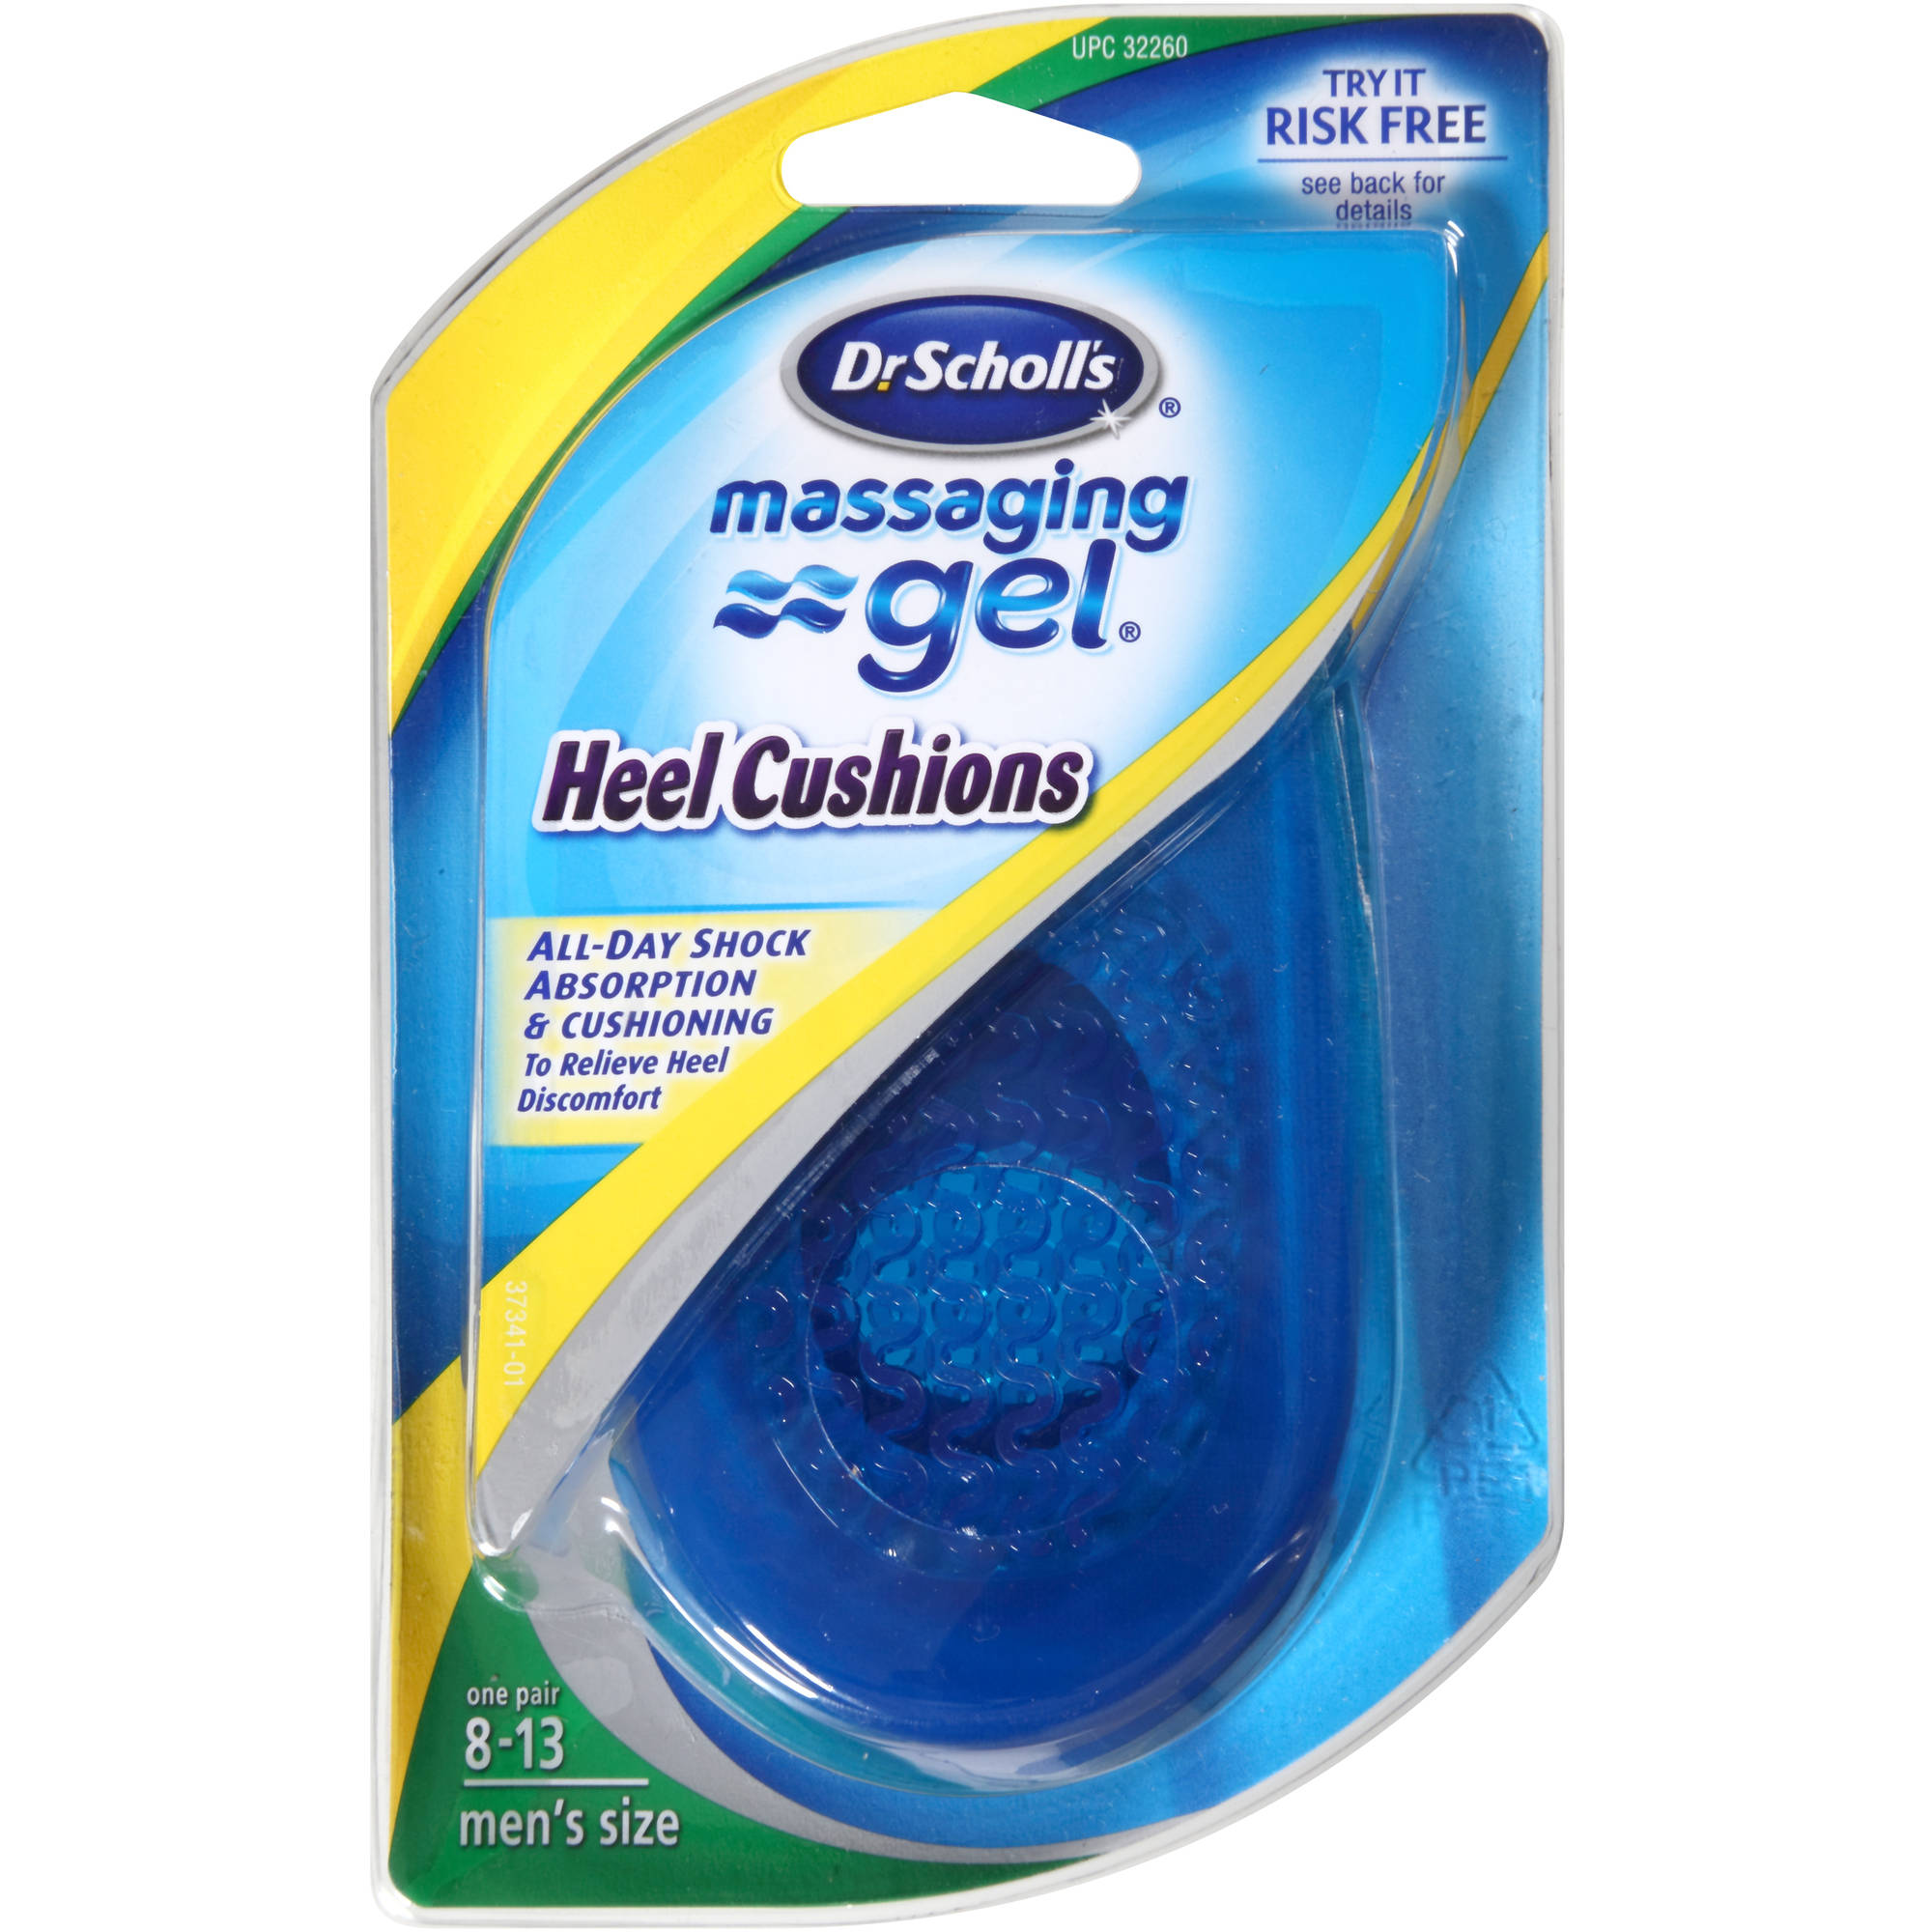 Dr. Scholl's Massaging Gel Heel Cushions, 1 pr